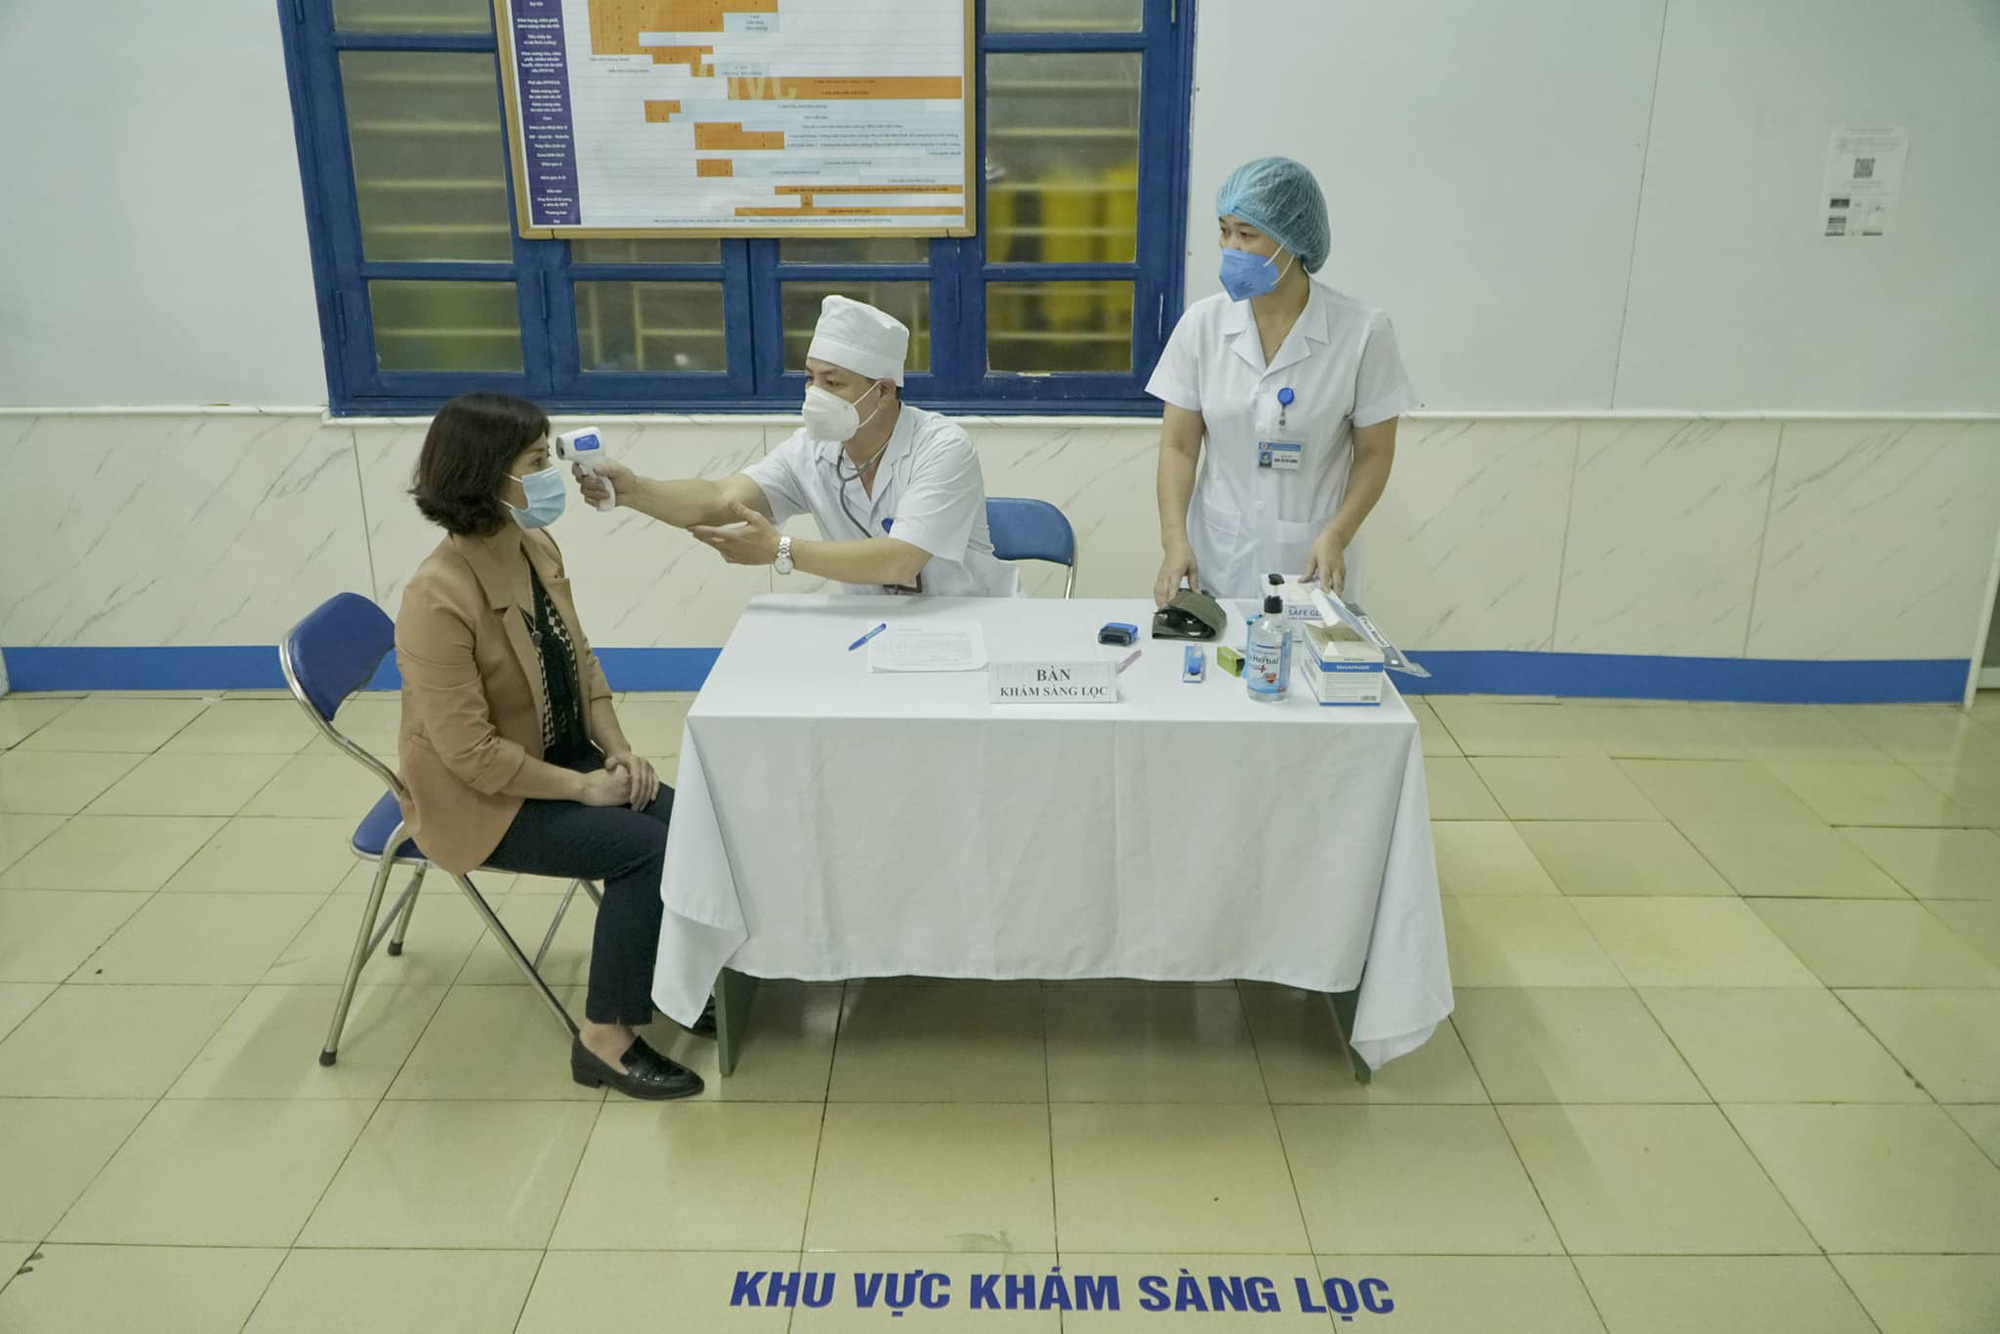 A woman undergoes a health-check before receiving COVID-19 vaccine in Hai Duong Province, Vietnam, March 8, 2021. Photo: Pham Tuan / Tuoi Tre